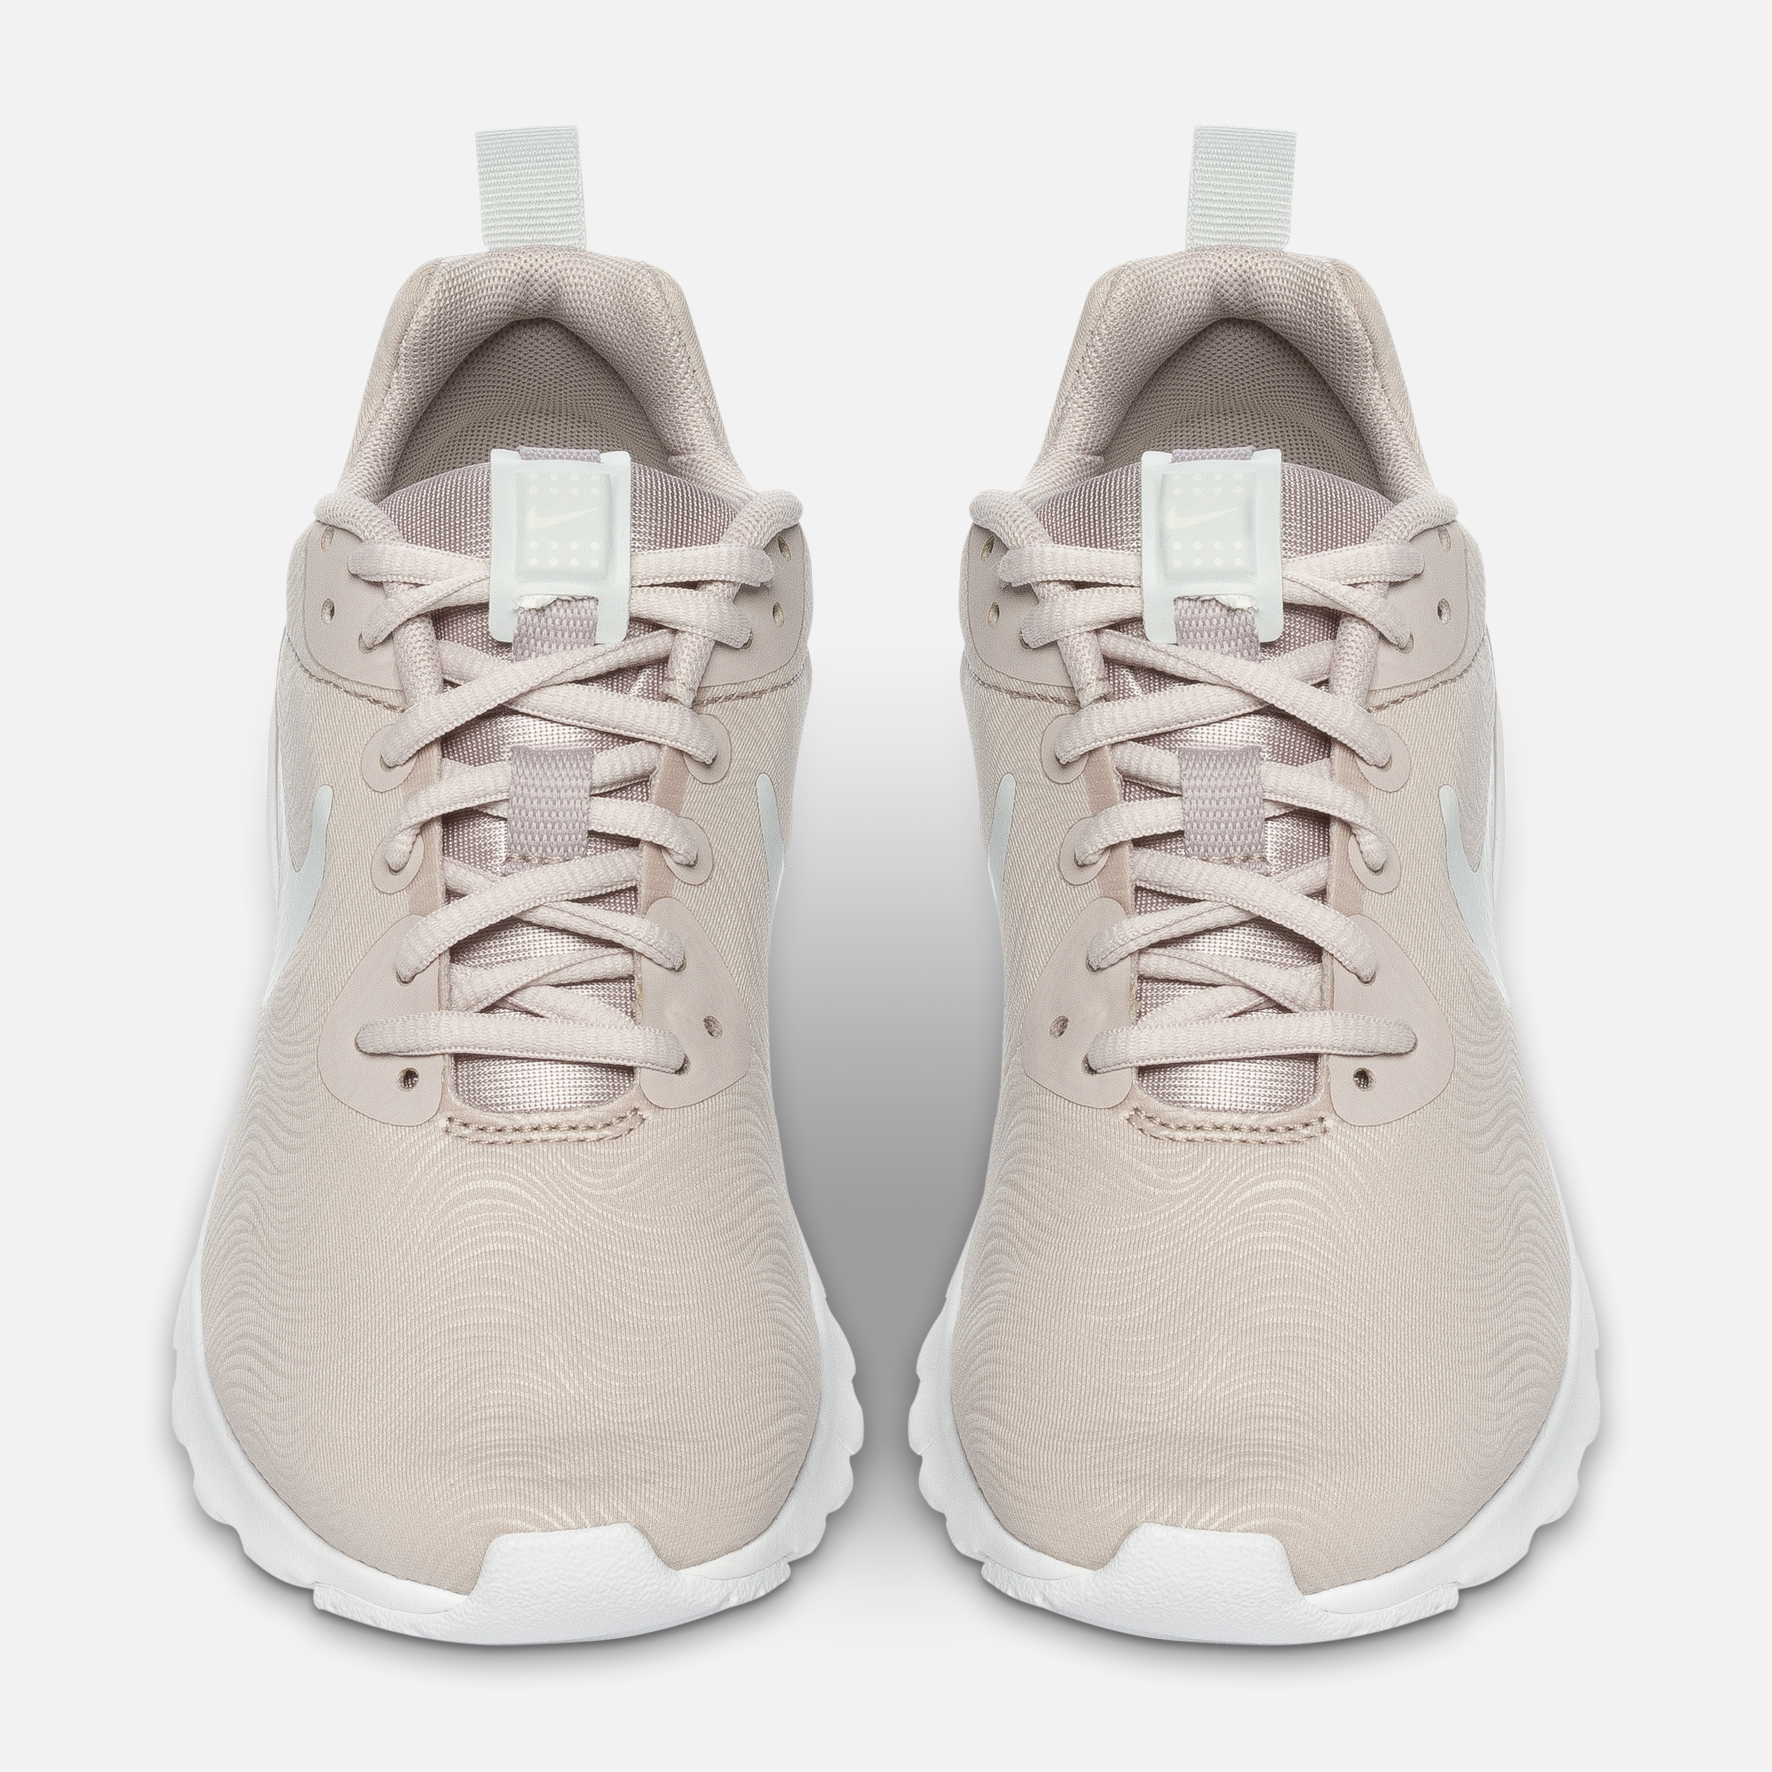 new style 5ee9a 64eaf Nike Air Max Thea Rosa - 305893